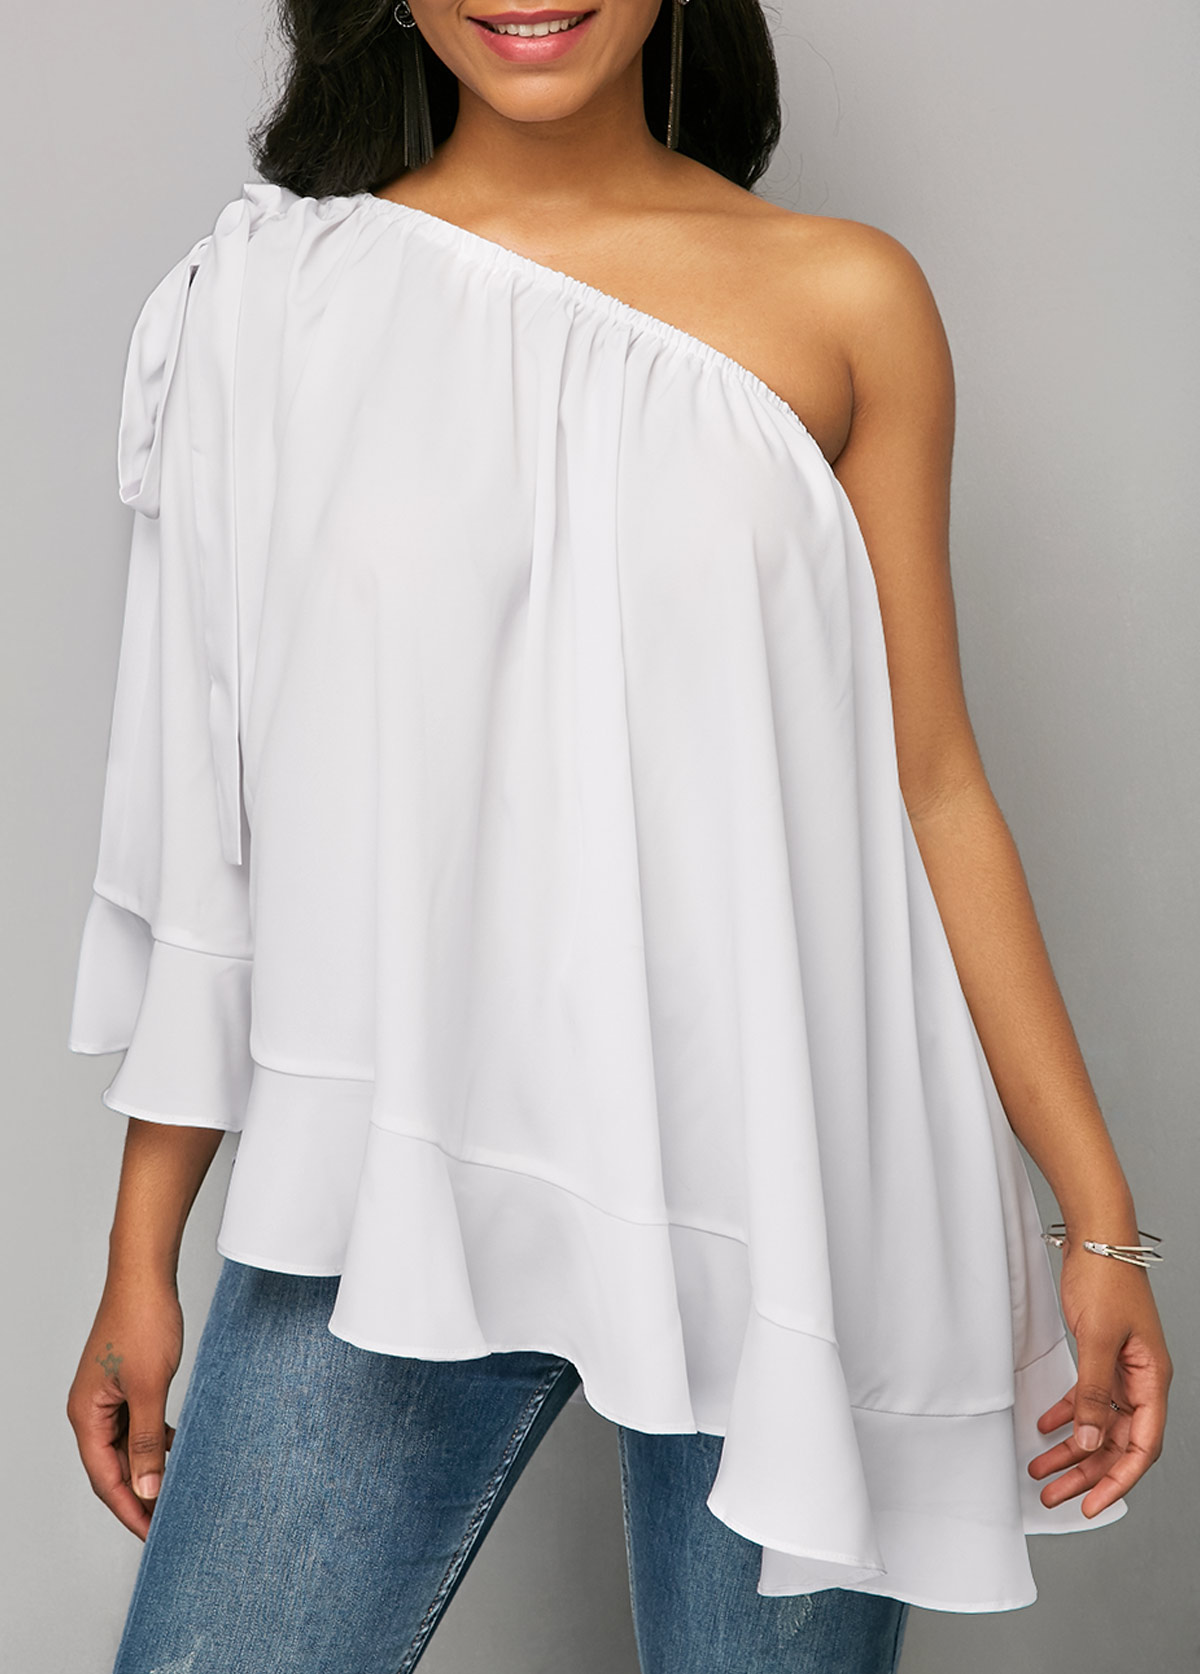 Solid White One Shoulder Ruffle Blouse